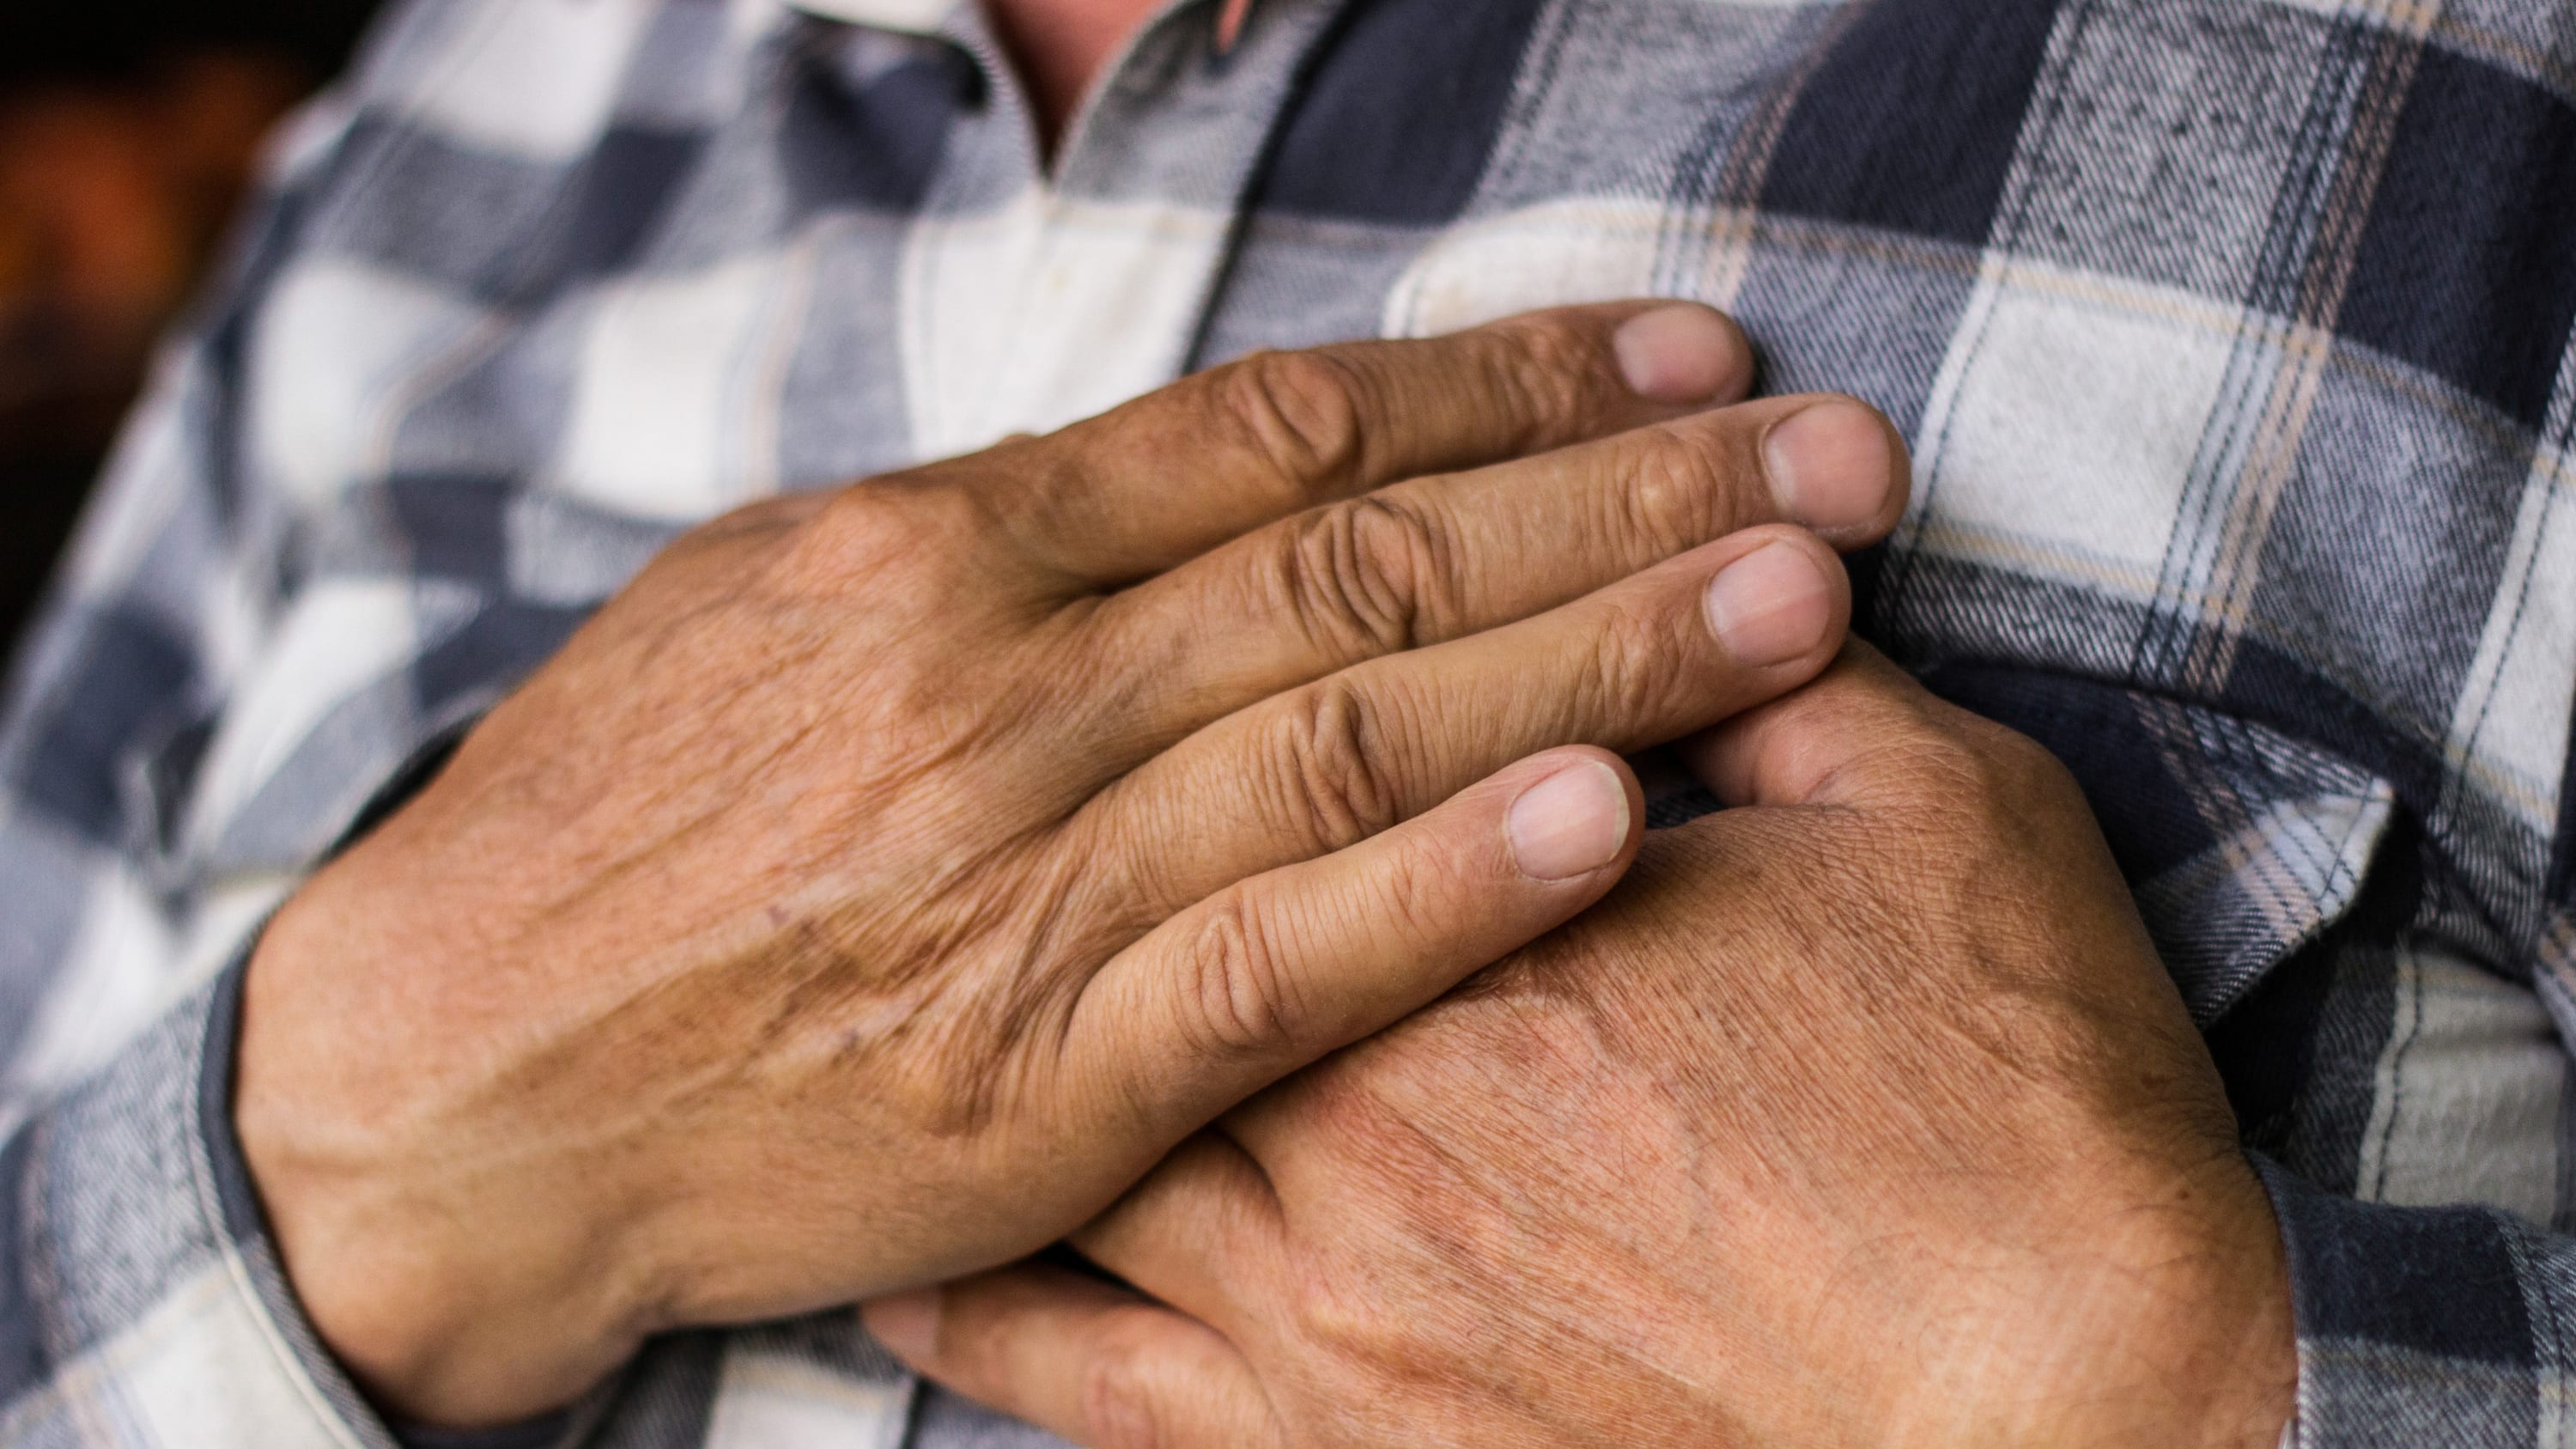 An elderly man clutches his chest in response to pain that could be a sign of a heart attack.